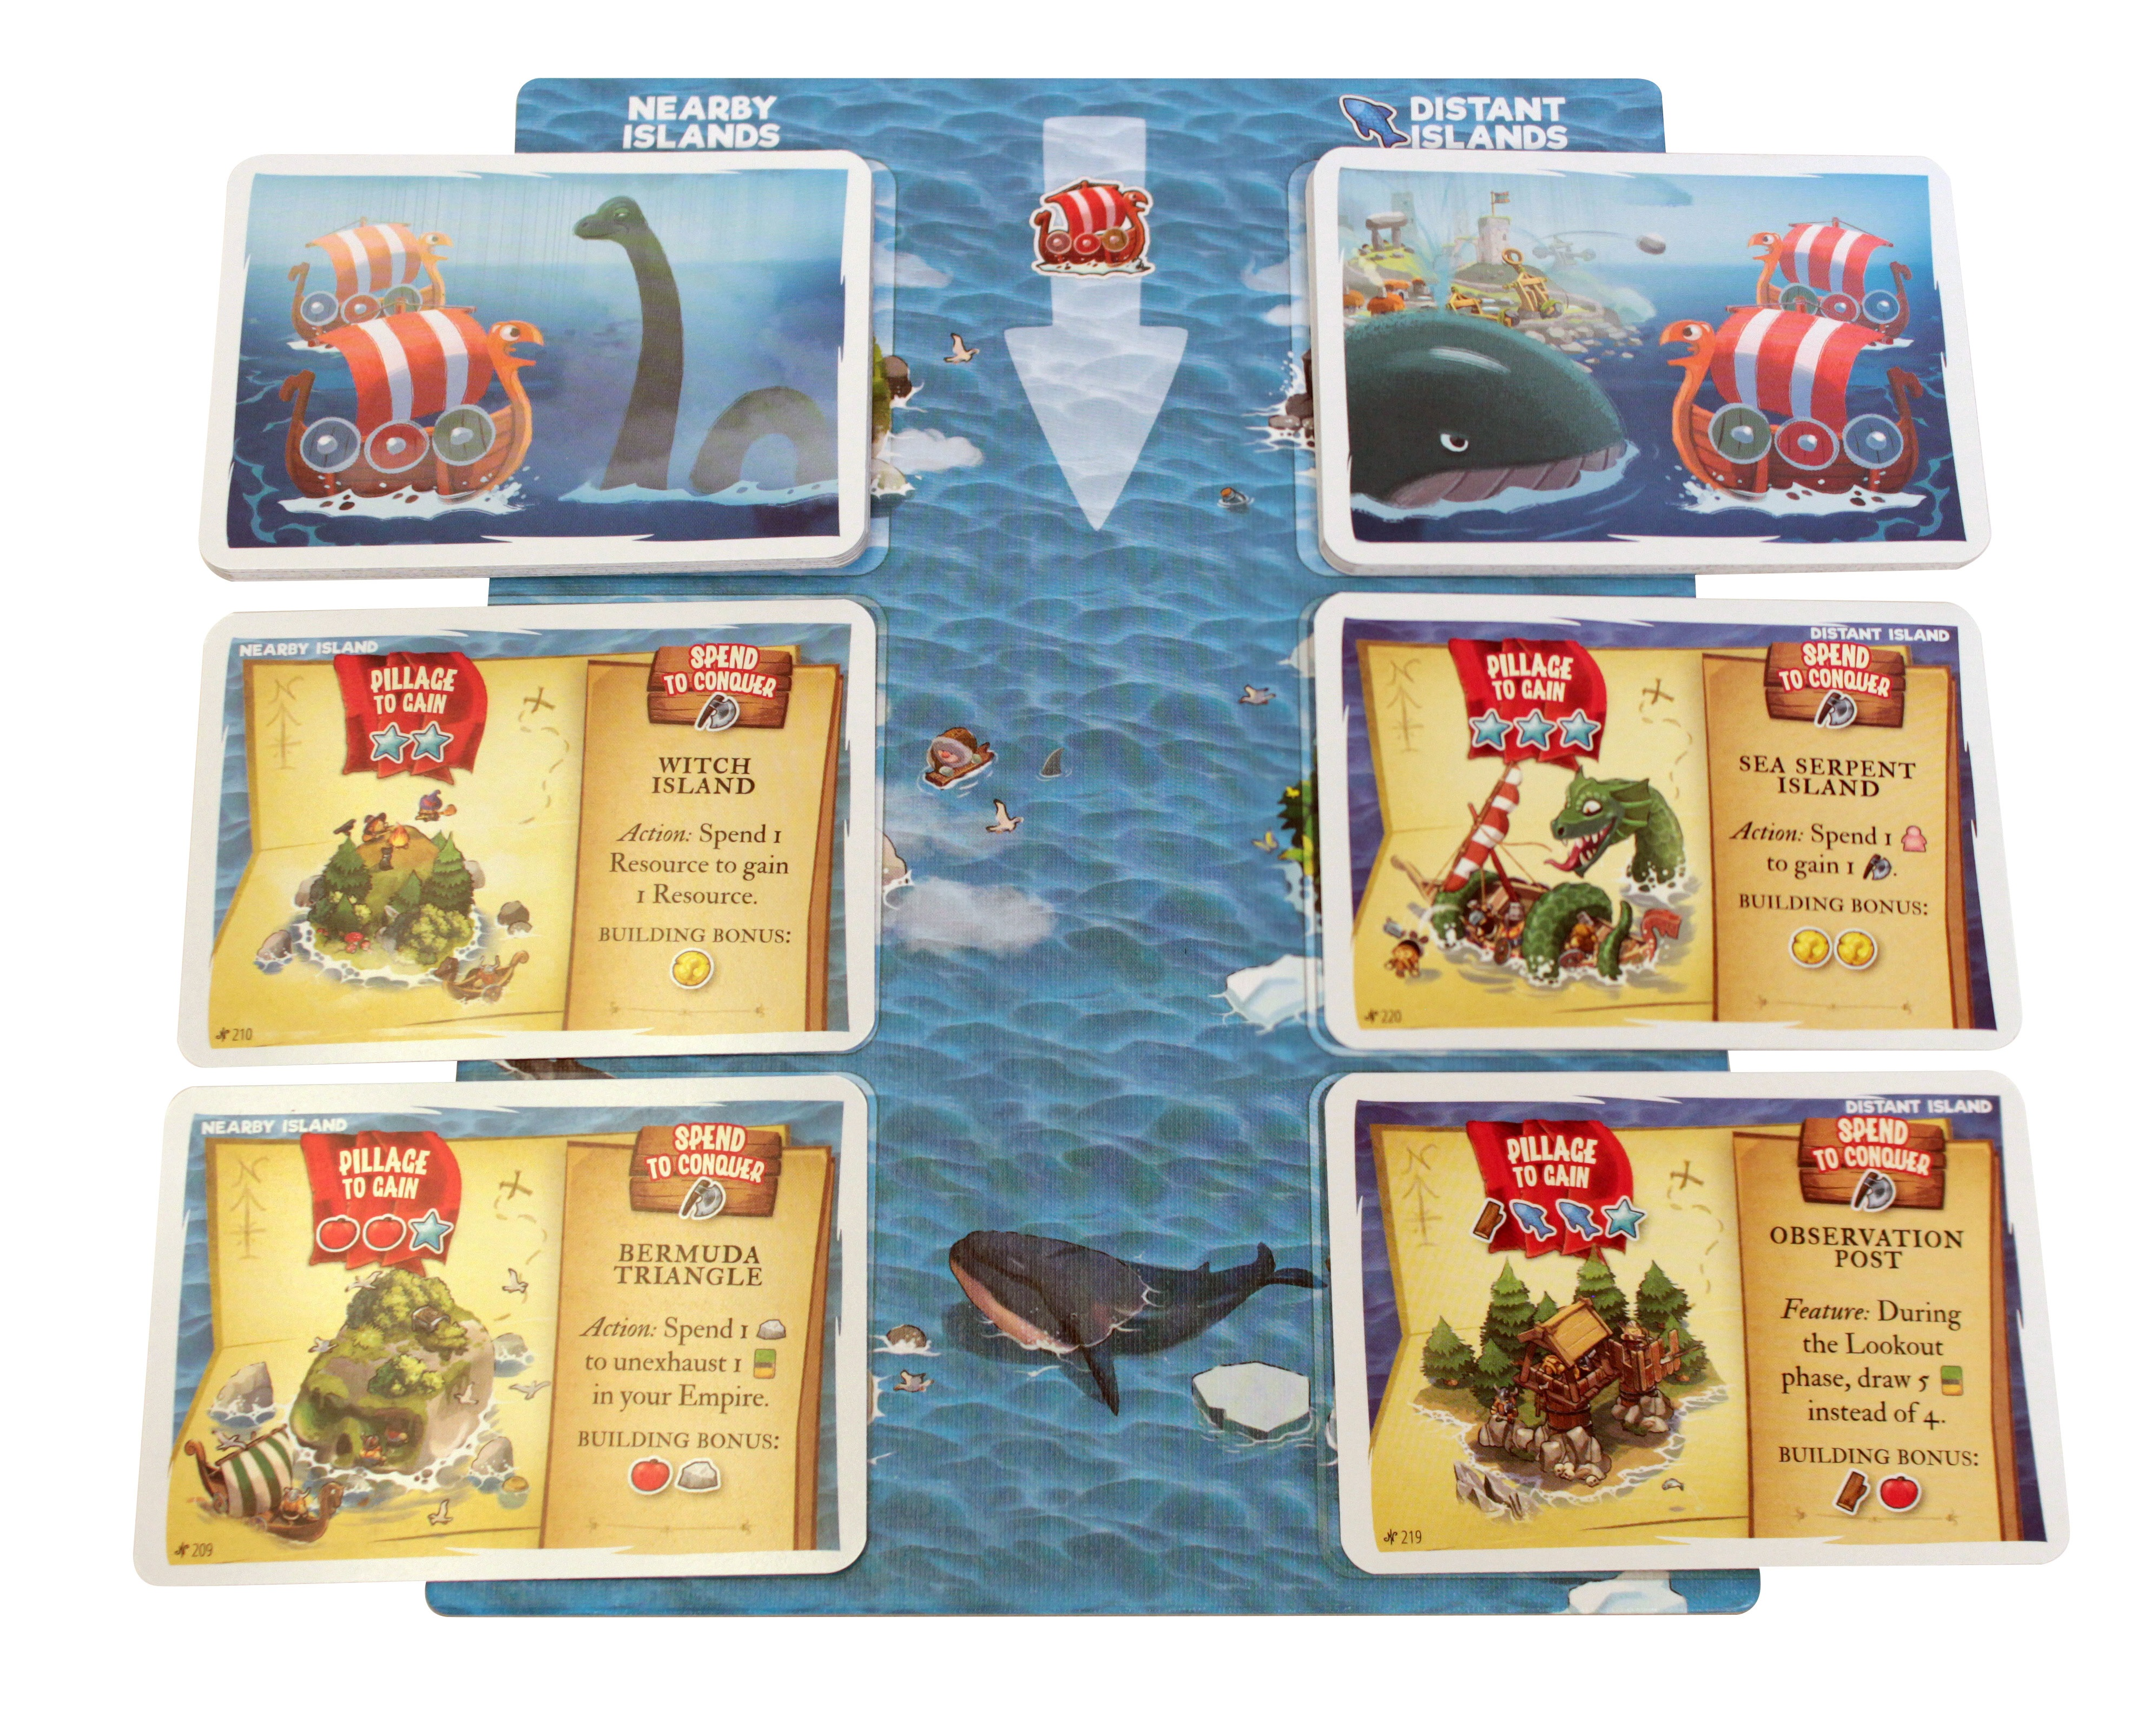 player game board to mark islands locations within the game, with six game cards containing the names of different islands within the game